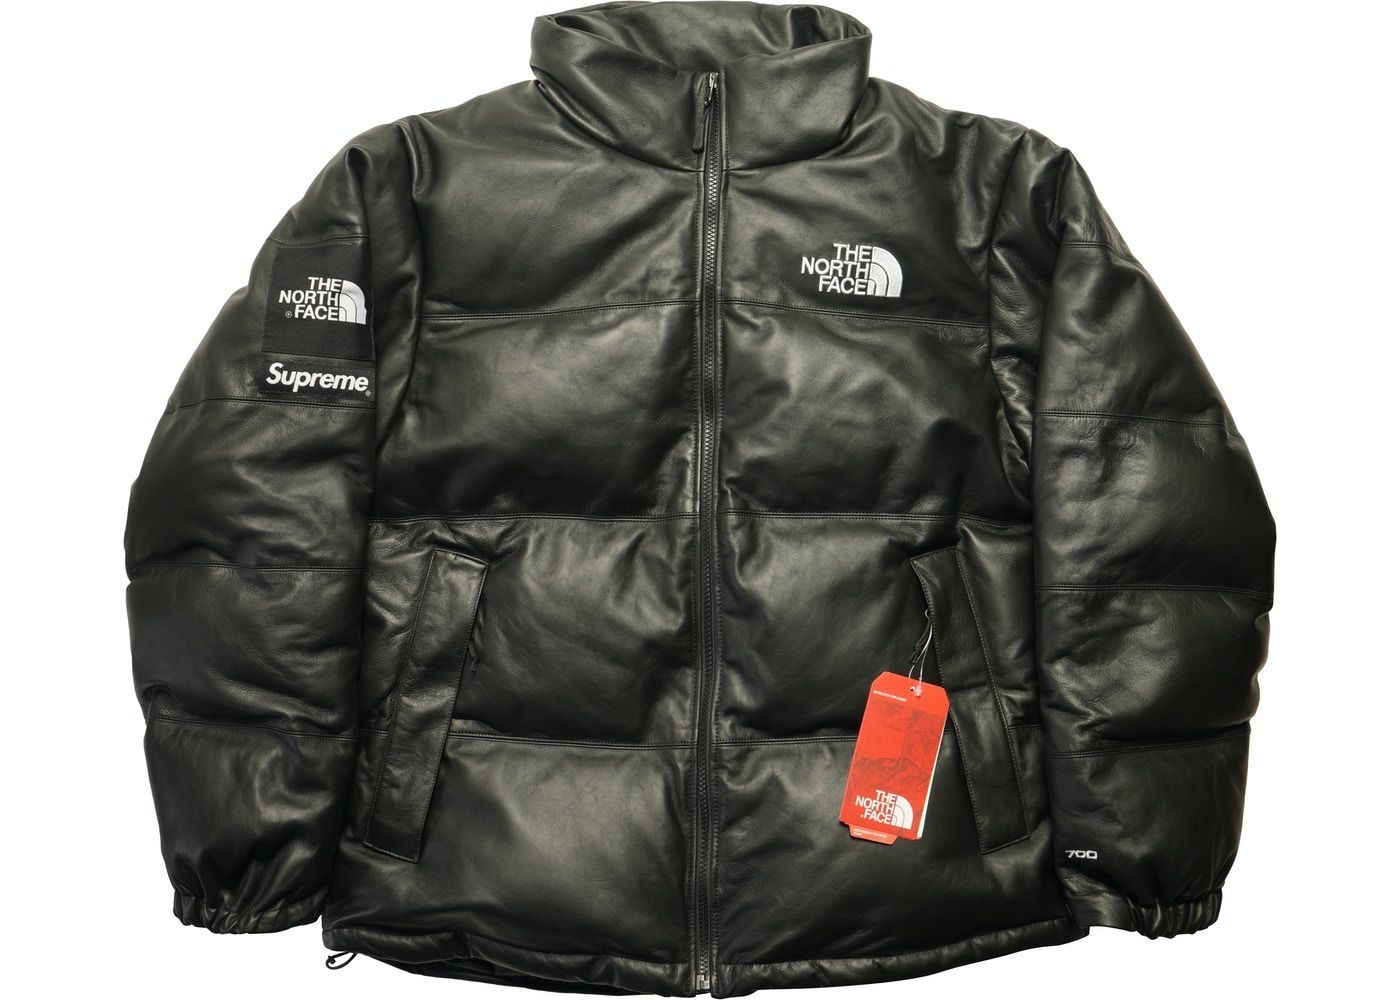 Supreme The North Face Leather Nuptse Jacket Black In 2021 The North Face Leather Black Jacket [ 1000 x 1400 Pixel ]